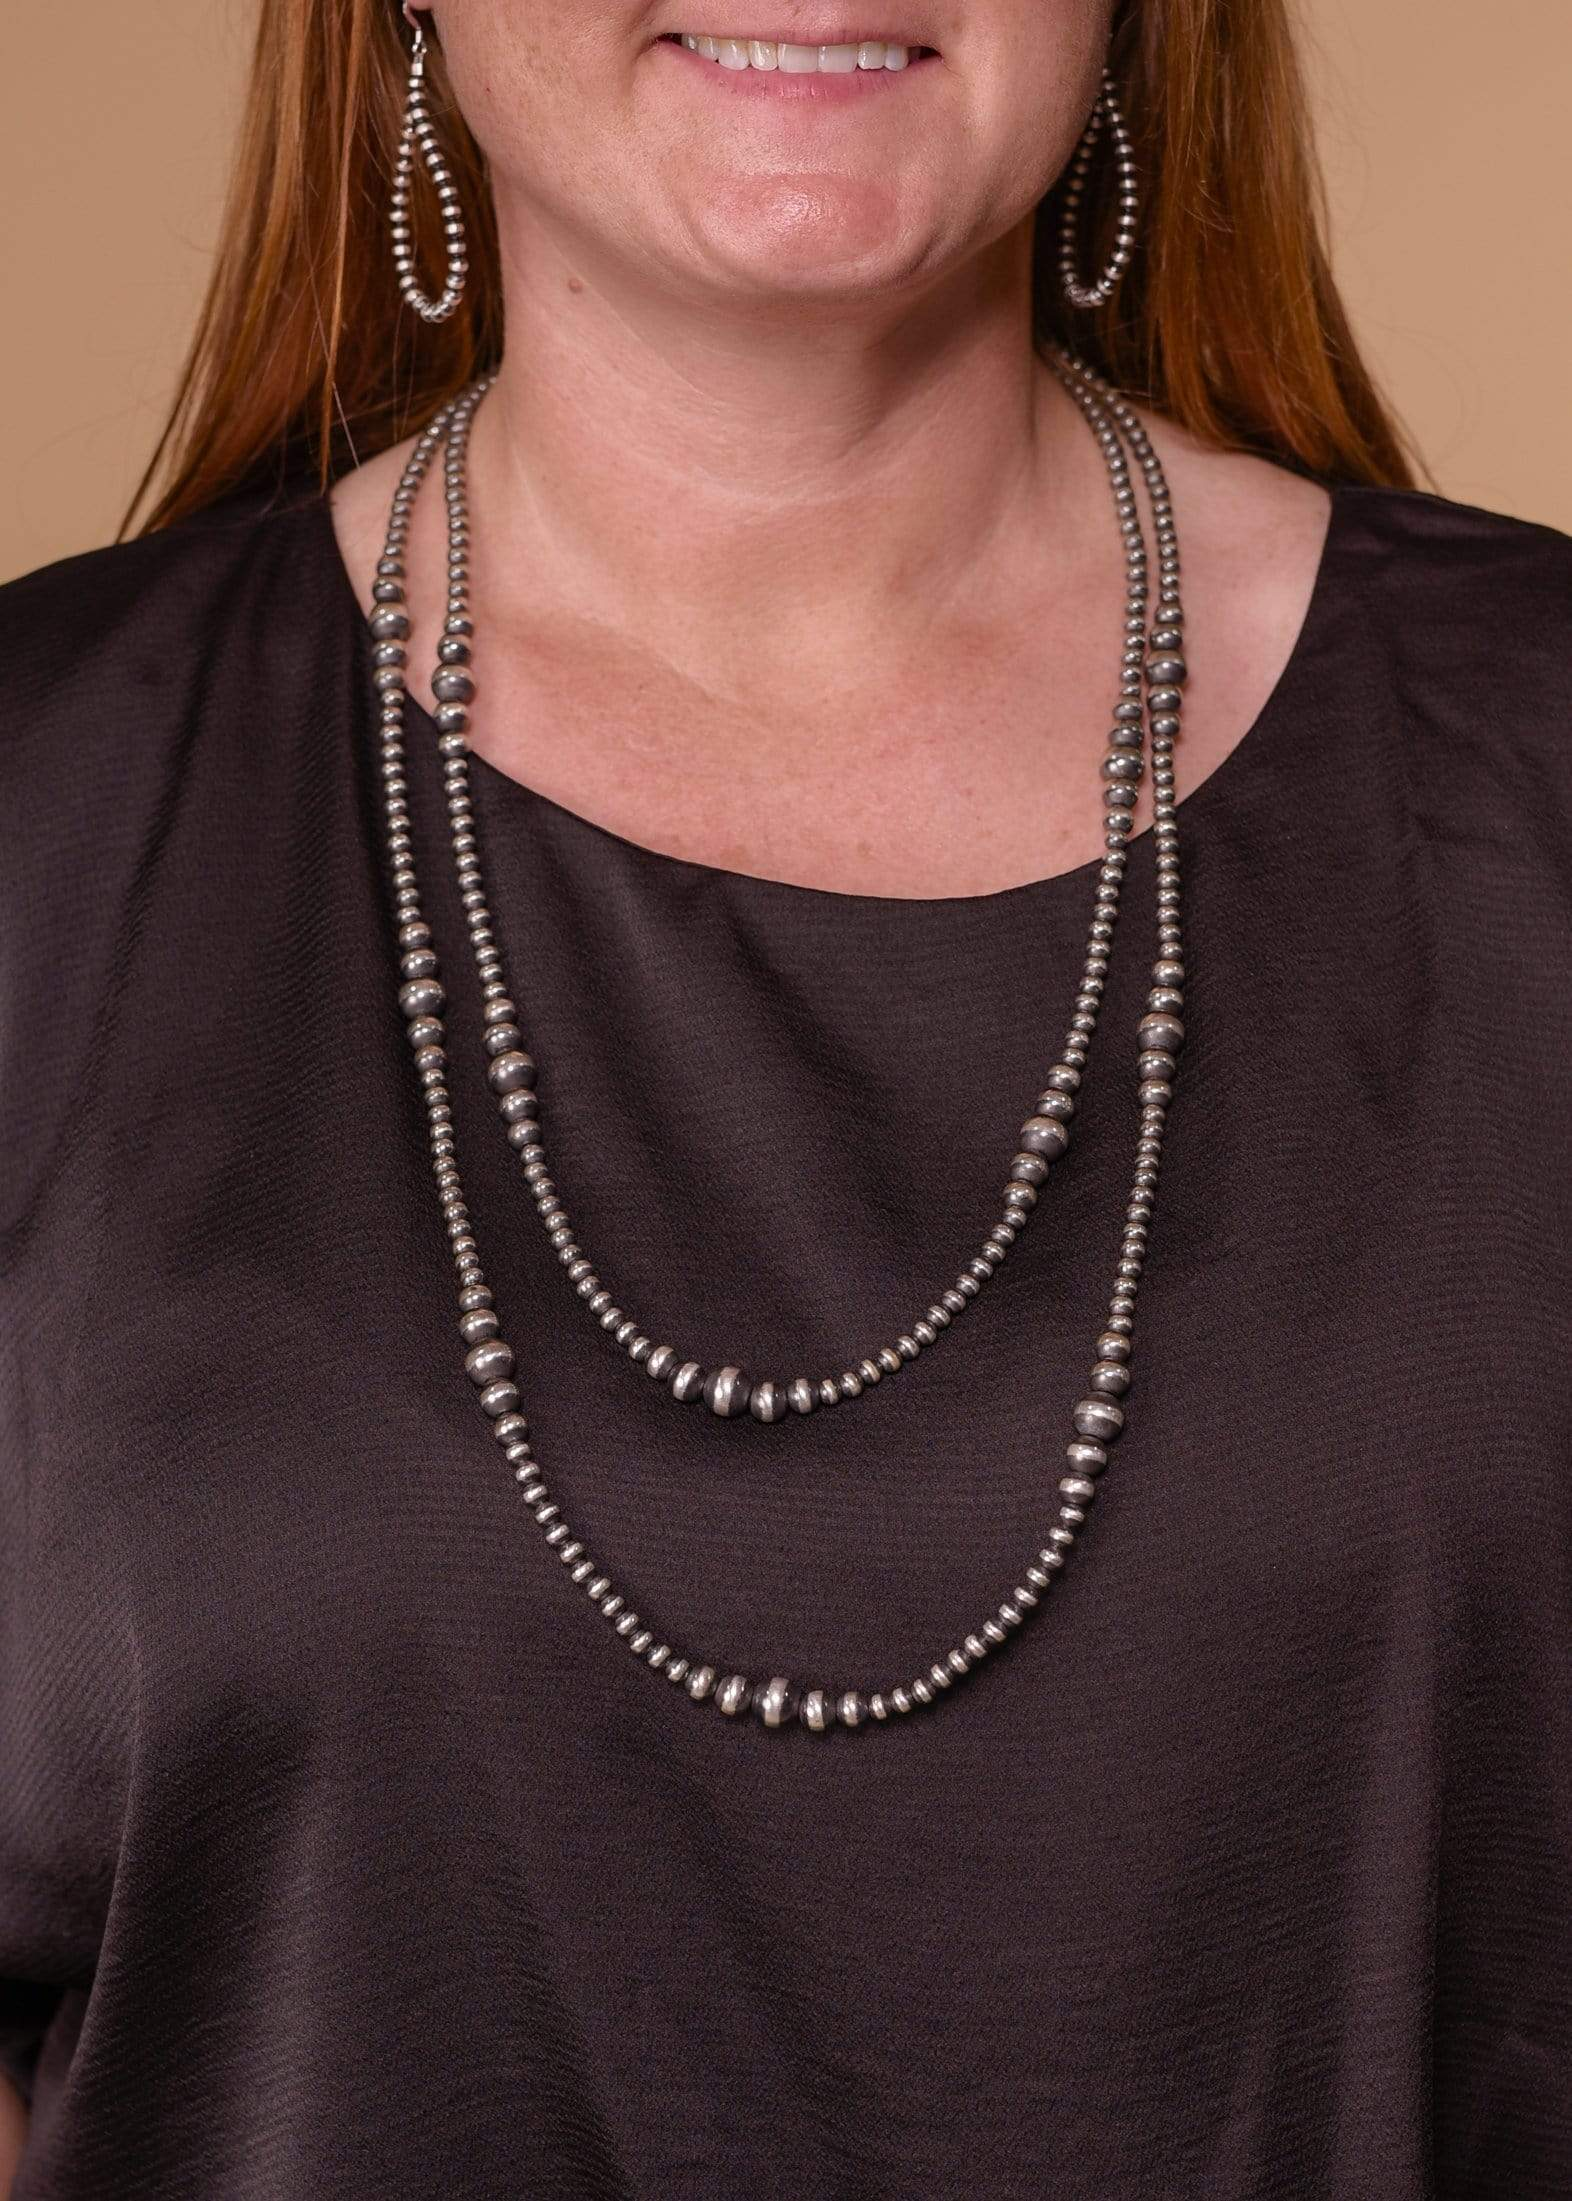 "Accessorize In Style Sterling Navajo Pearls Navajo Pearls with Variating Beads - 30"" - 36"""